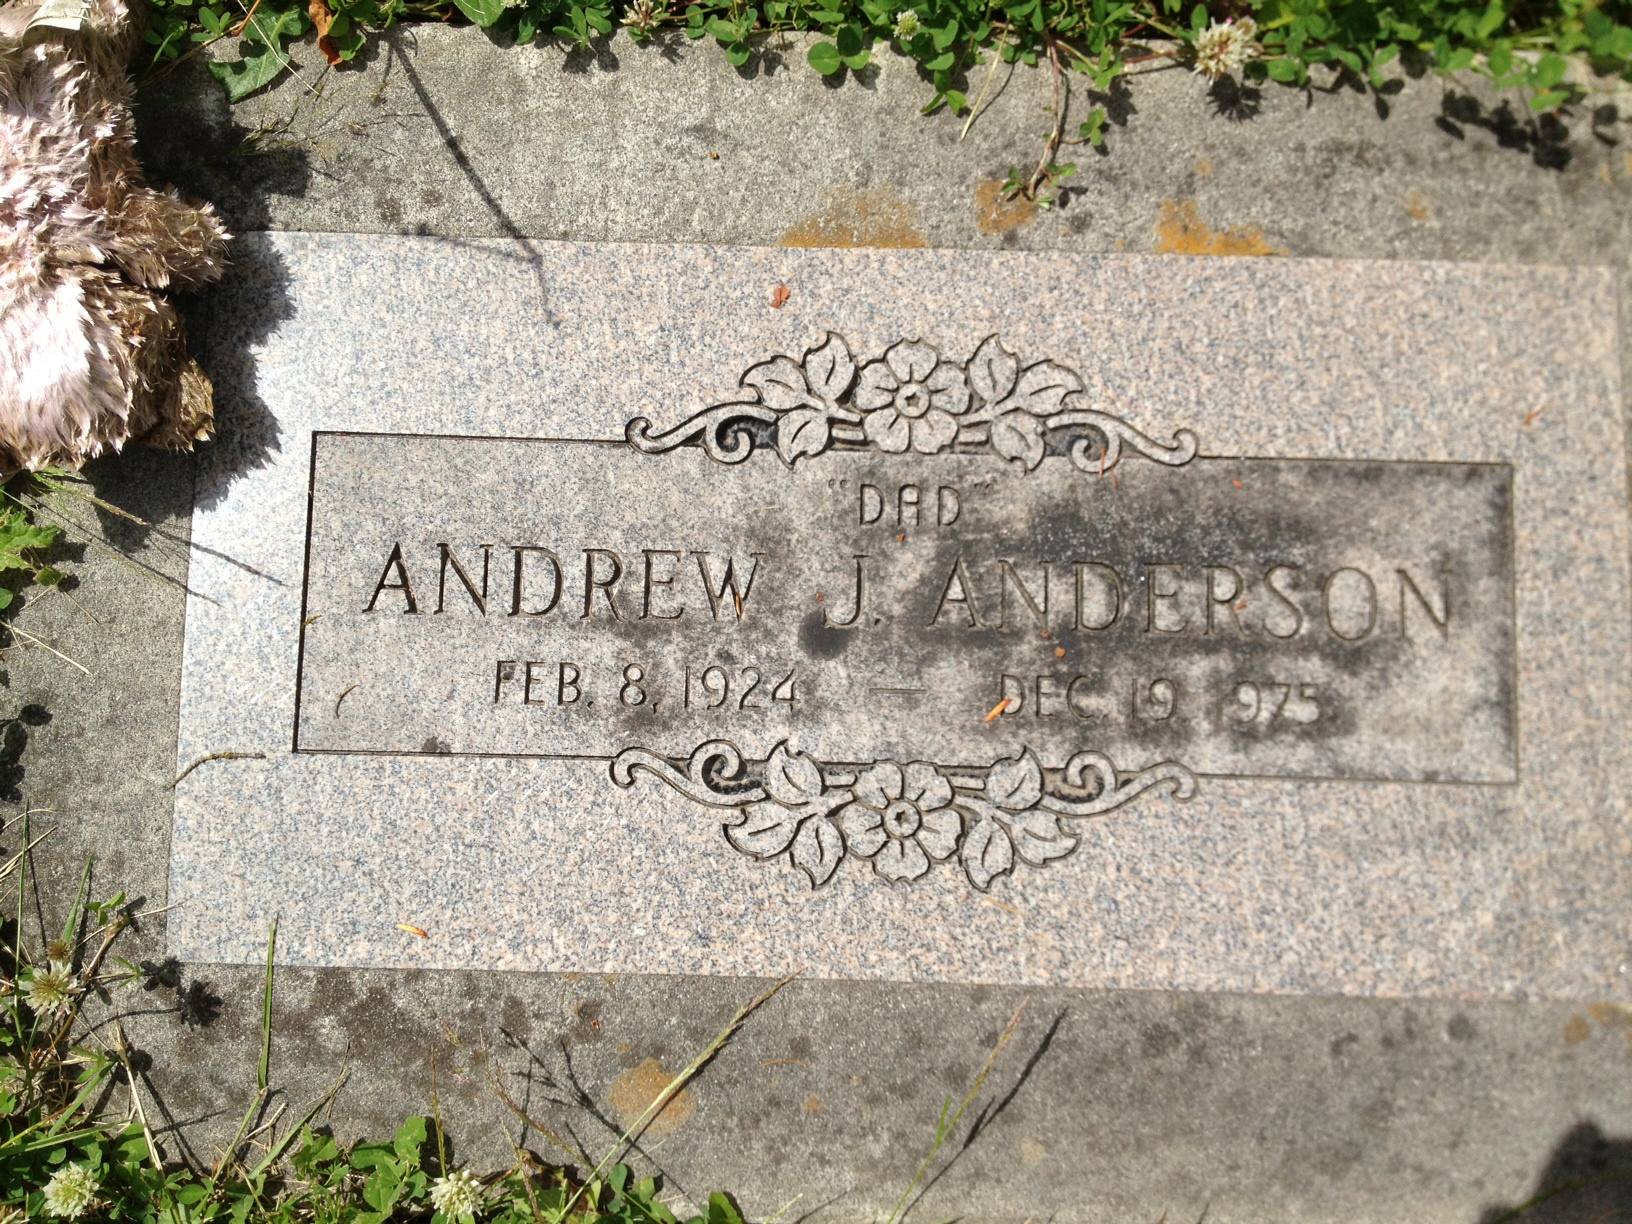 Andrew J. Anderson